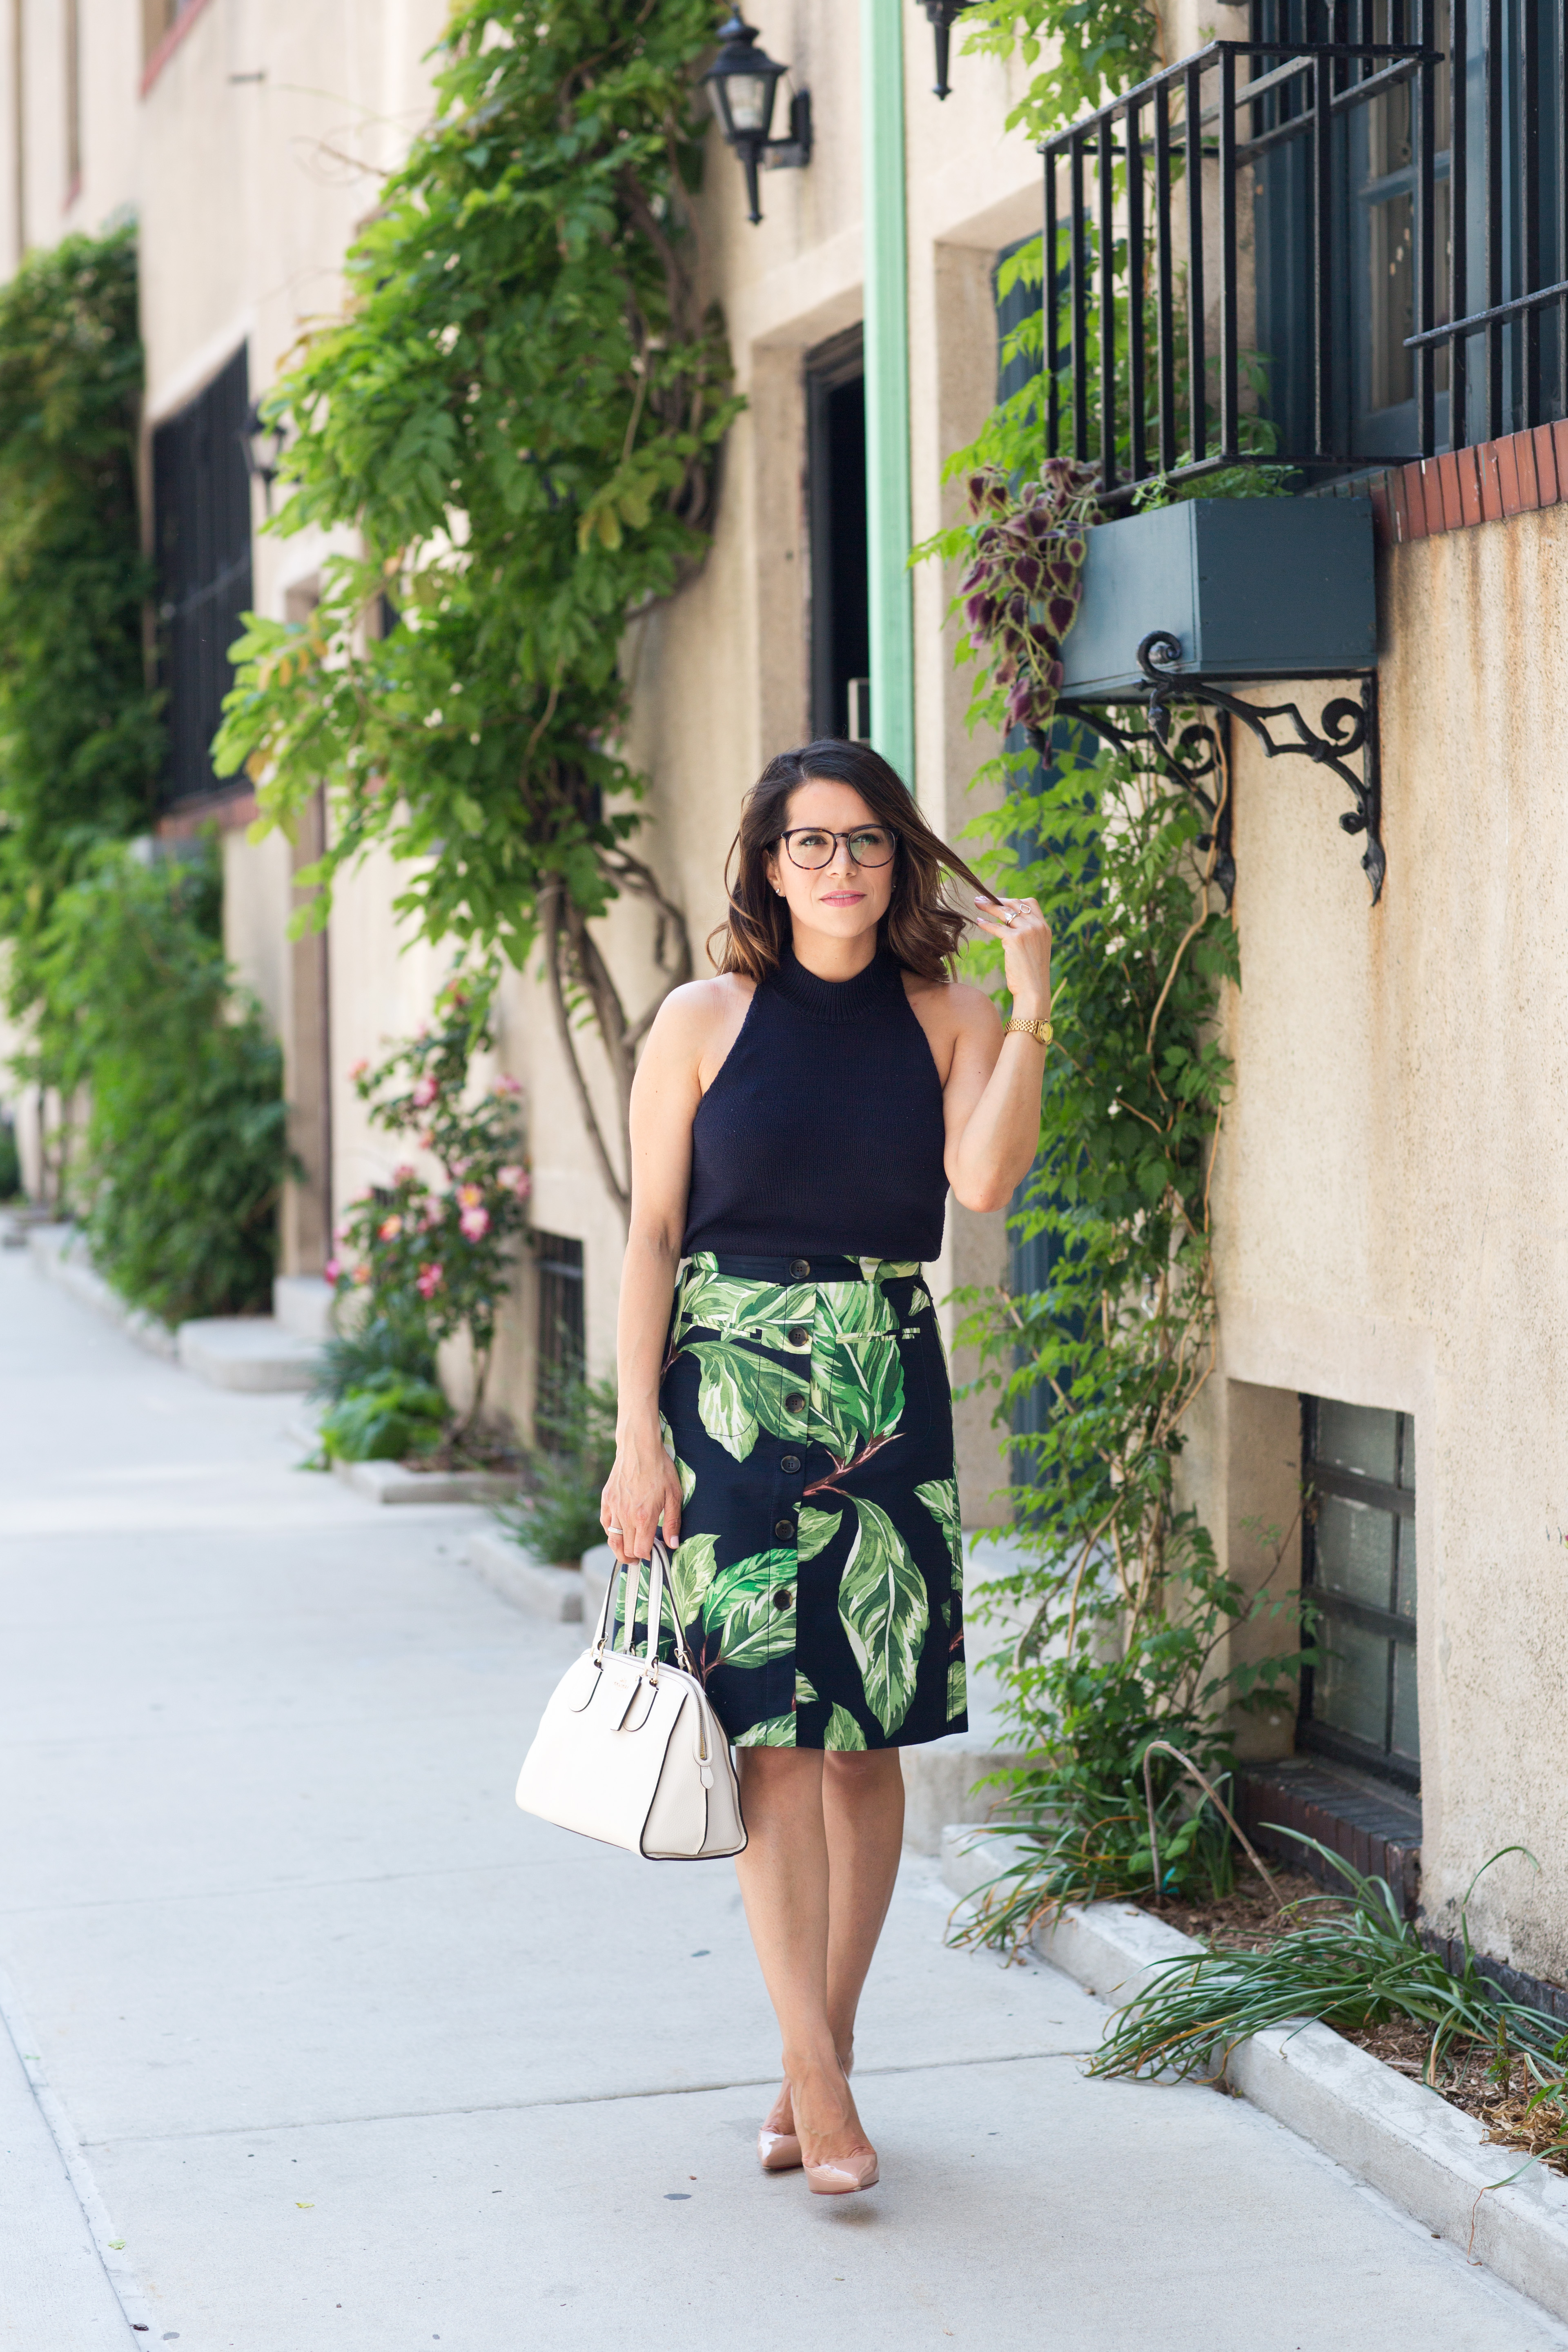 Ann Taylor palm skirt and navy sweater halter top for summer workwear outfit by Corporate Catwalk